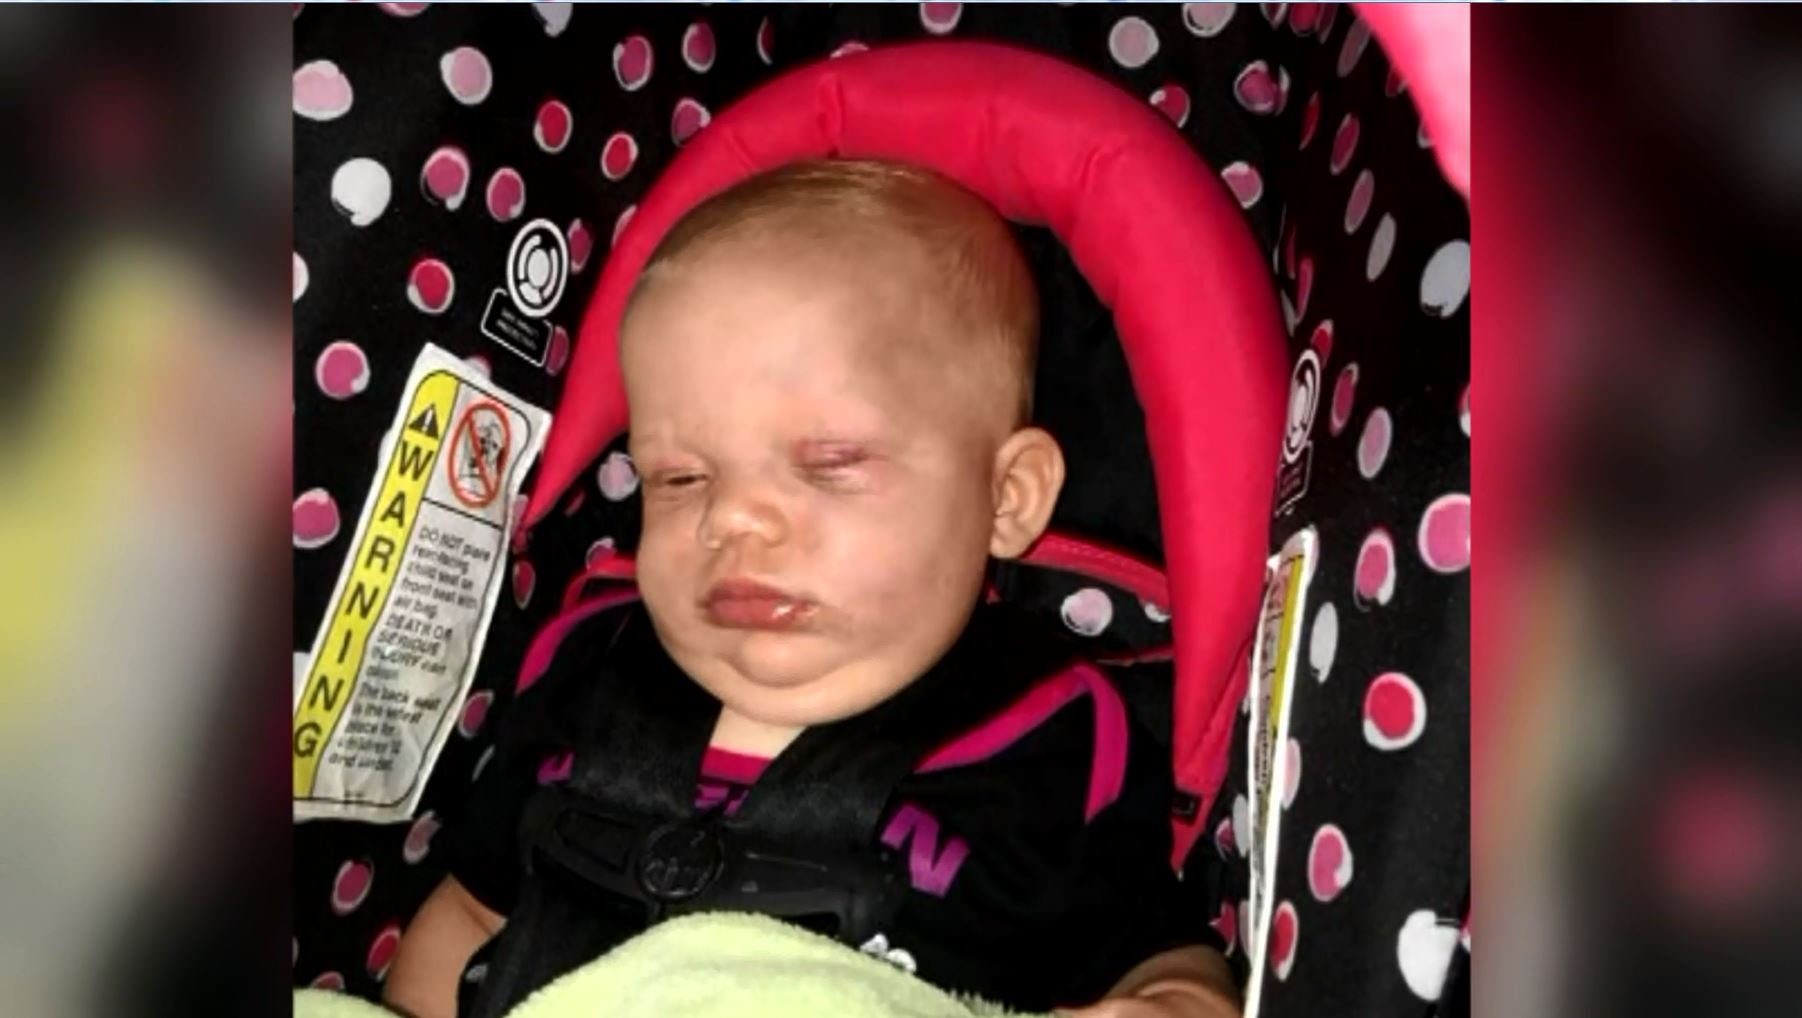 Parents say babysitter to blame for 5-month-old's injuries